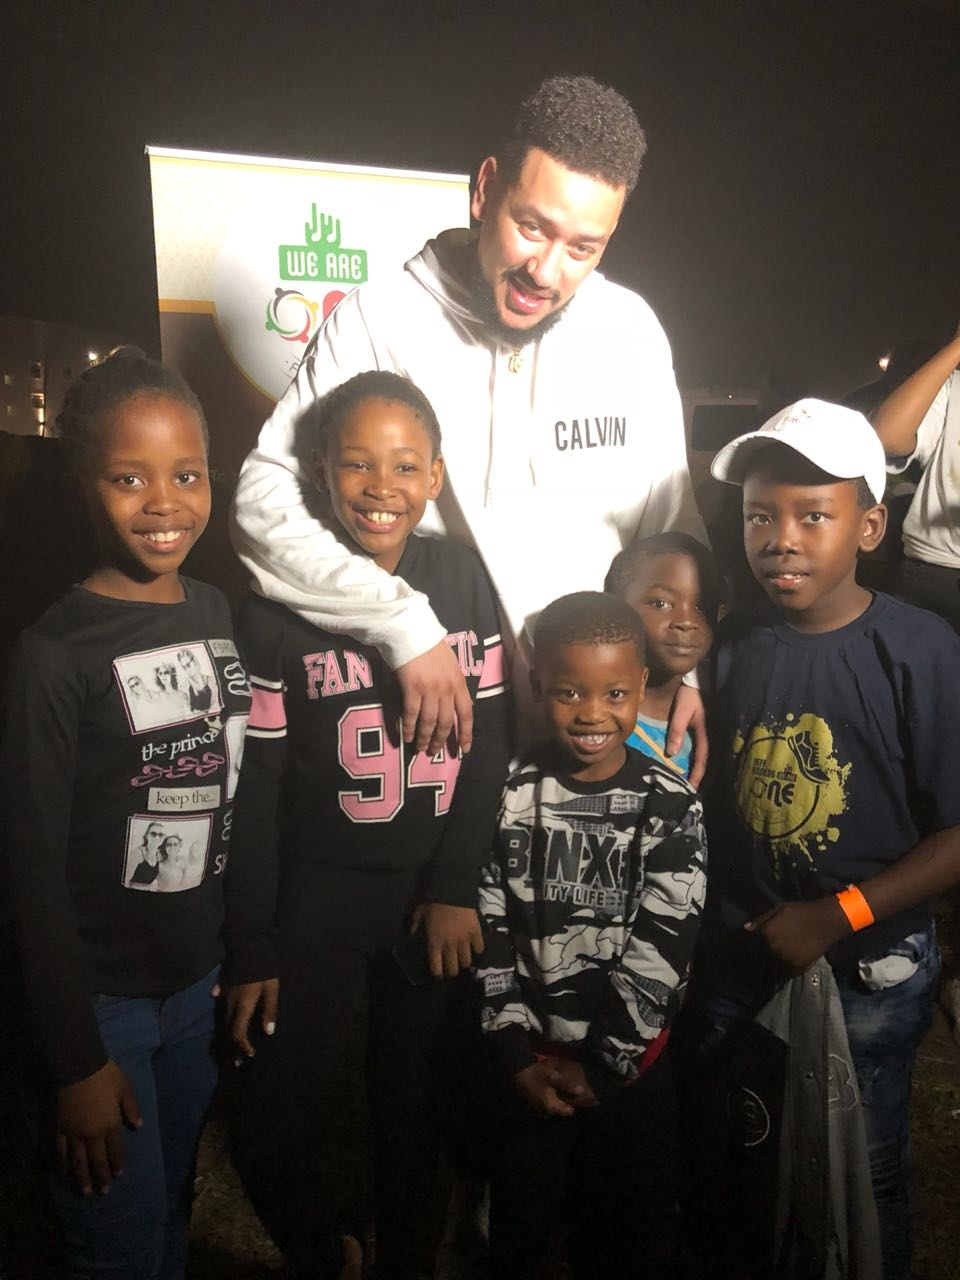 AKA poses with Sangenkosi Mkhungo and her friends.